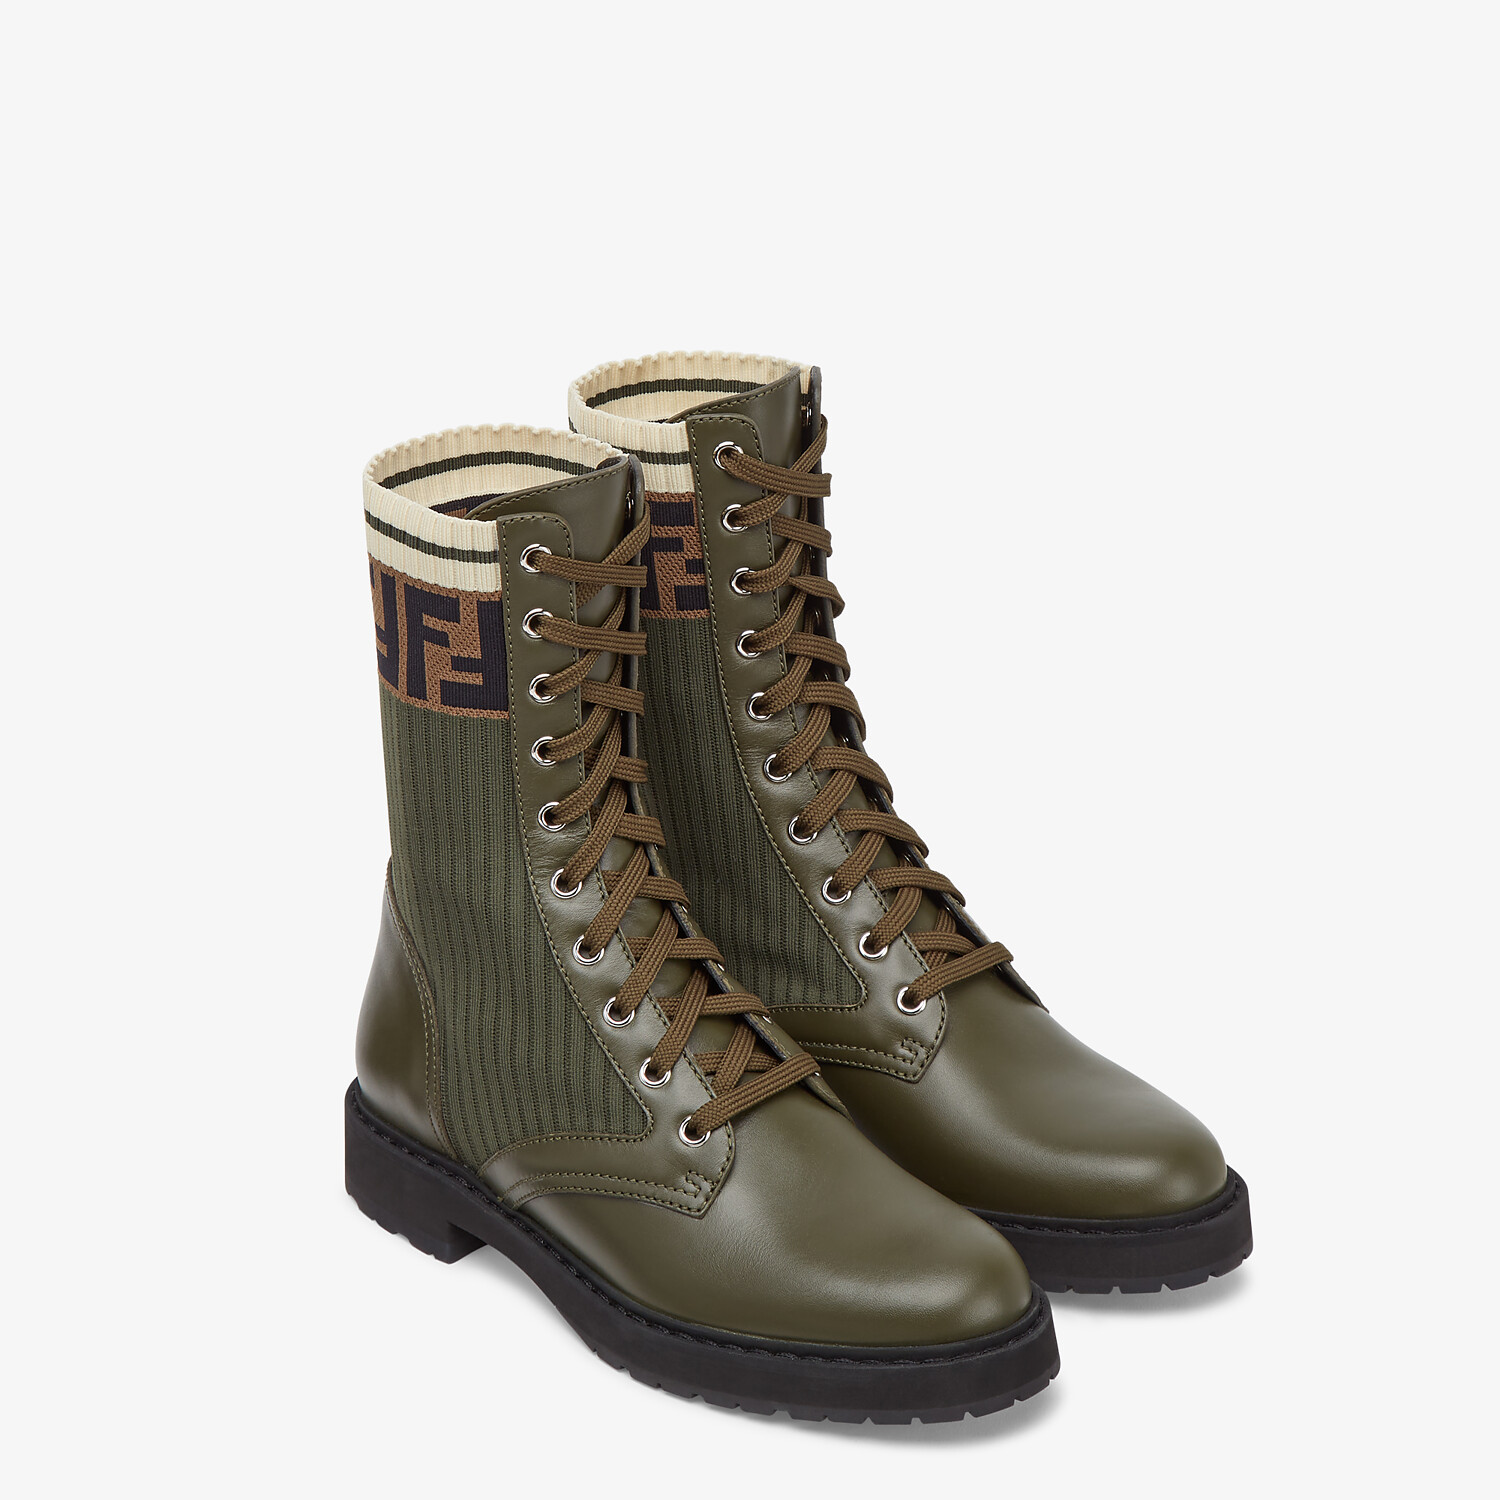 FENDI ANKLE BOOTS - Green leather biker boots - view 4 detail